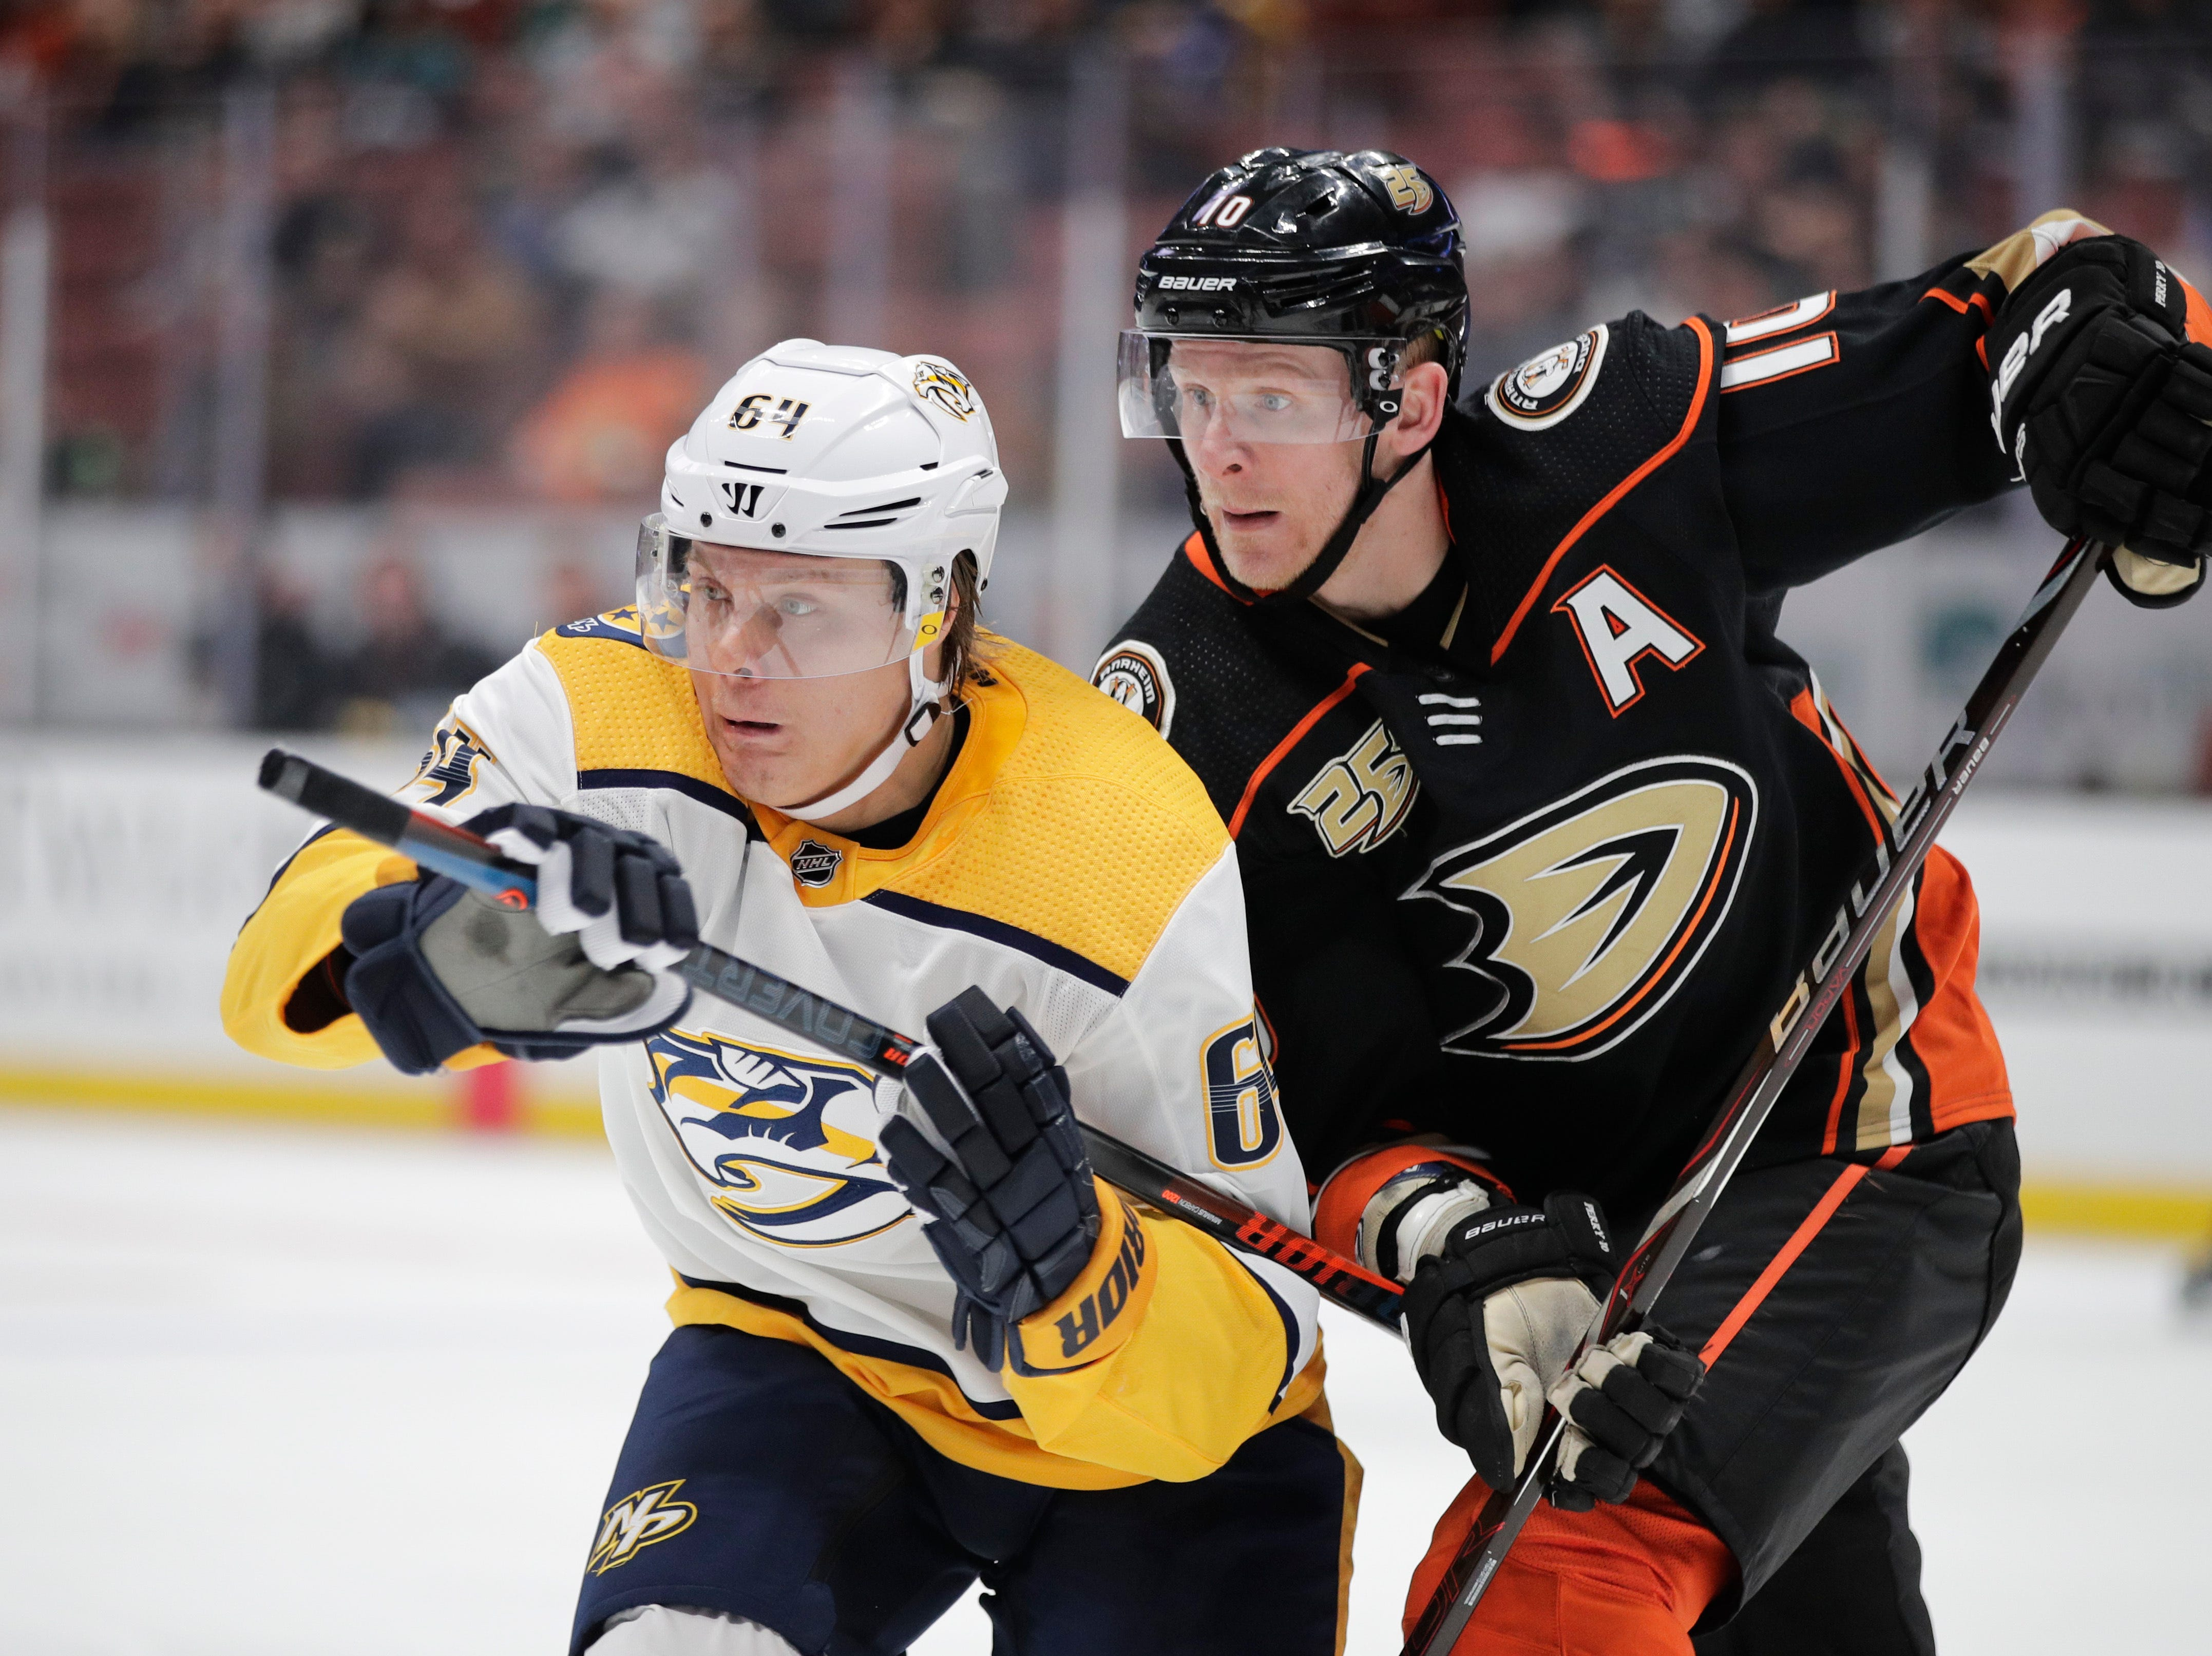 Nashville Predators' Mikael Granlund, left, and Anaheim Ducks' Corey Perry chase the puck on March 12, 2019.